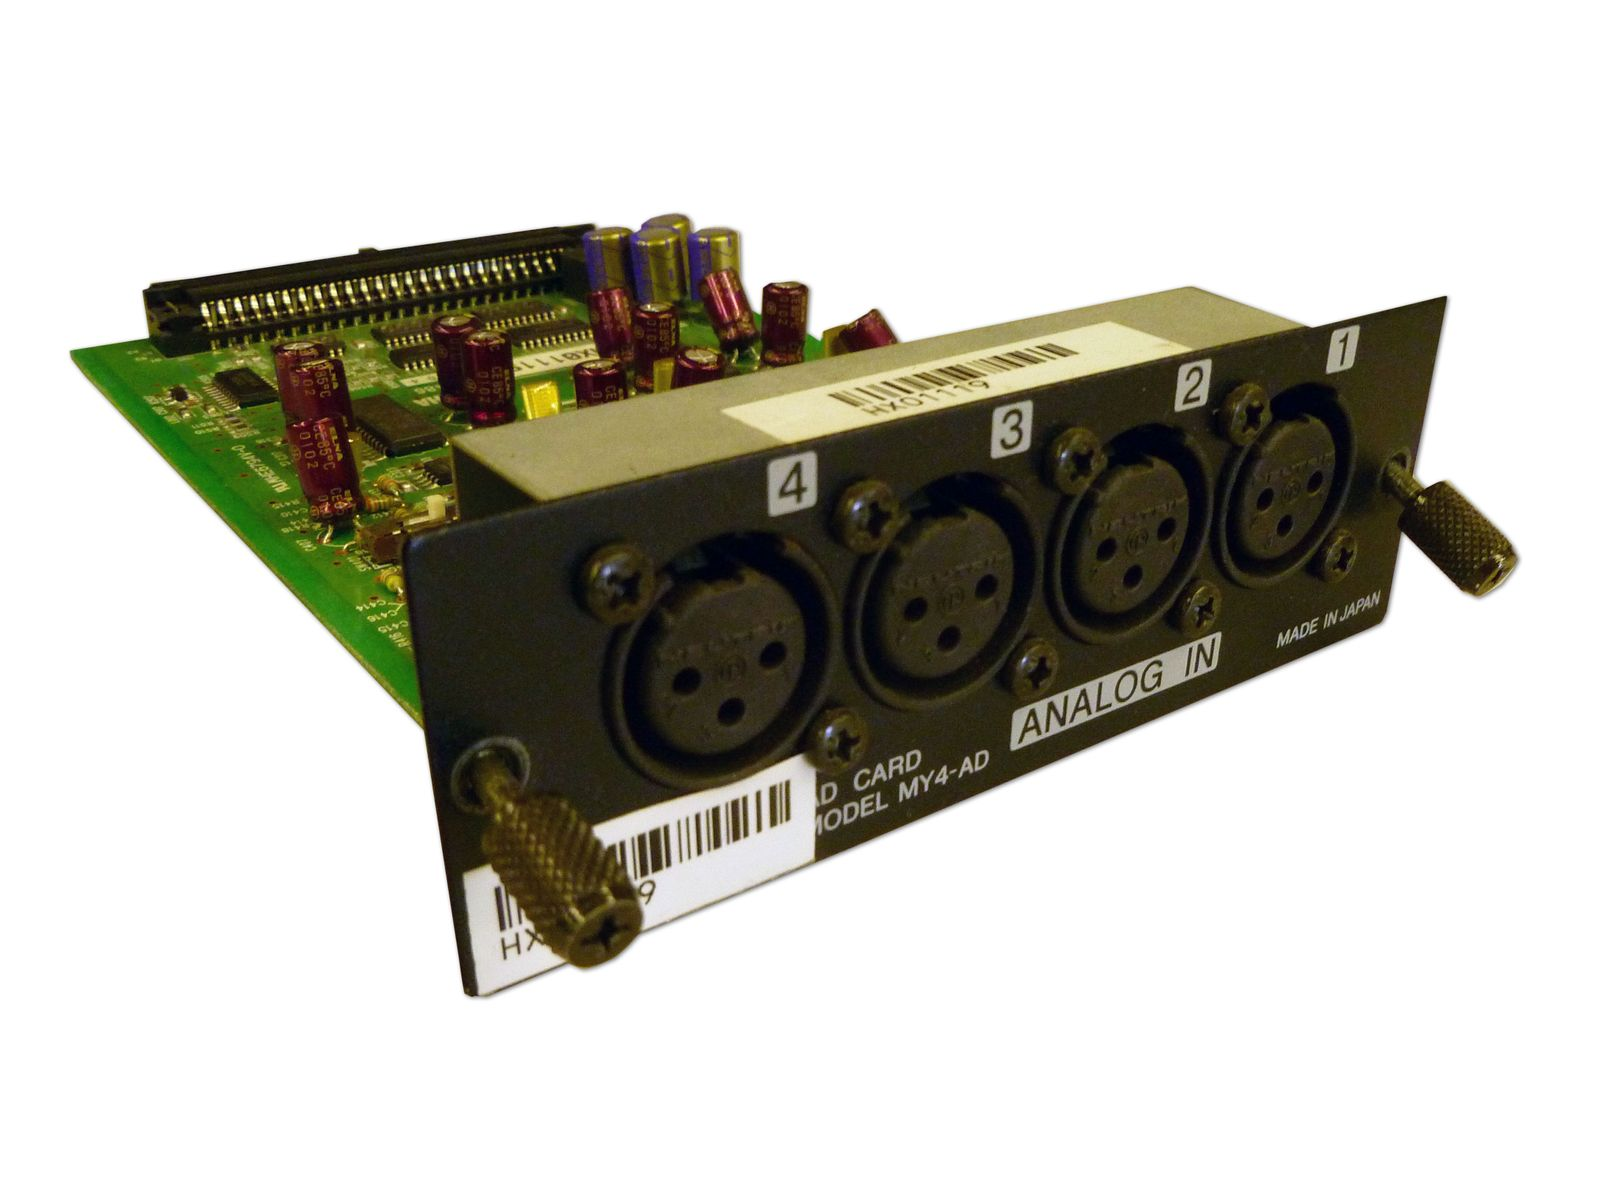 The Yamaha Model MY4-AD 4-Channel Analog Input Card is available at Hollywood Sound Systems.